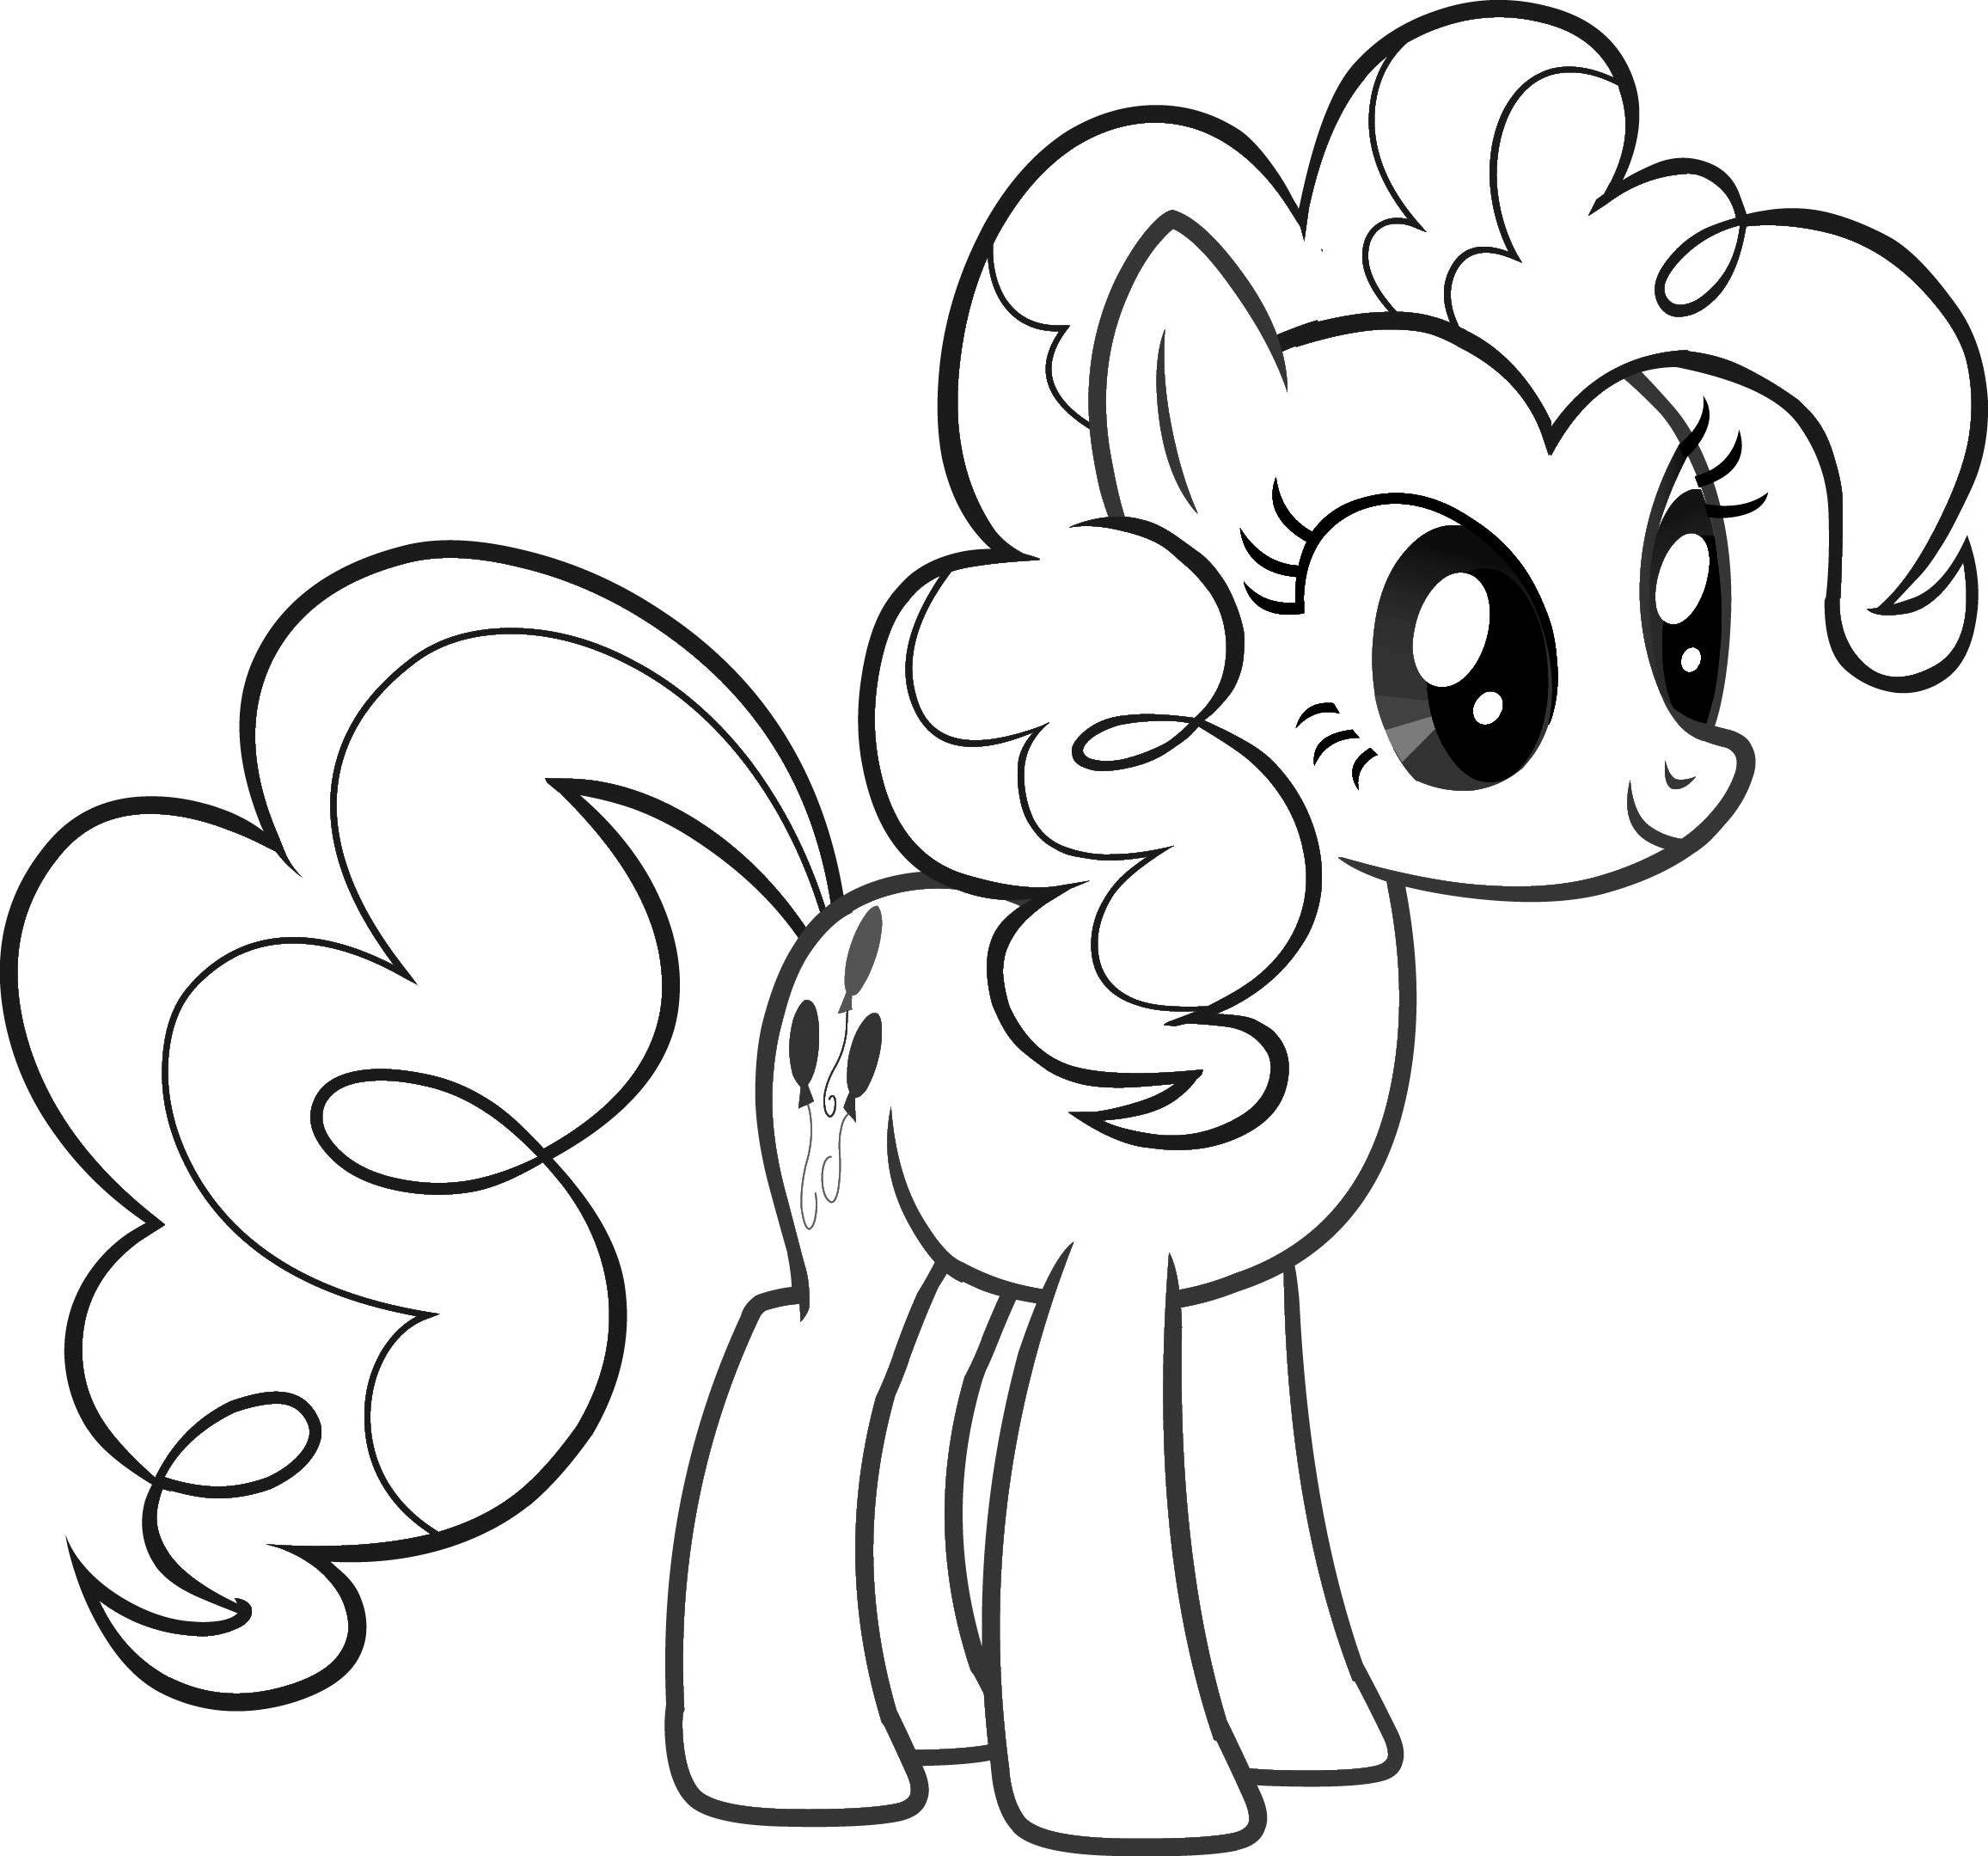 2313x2159 Cute Cartoon Characters Coloring Pages